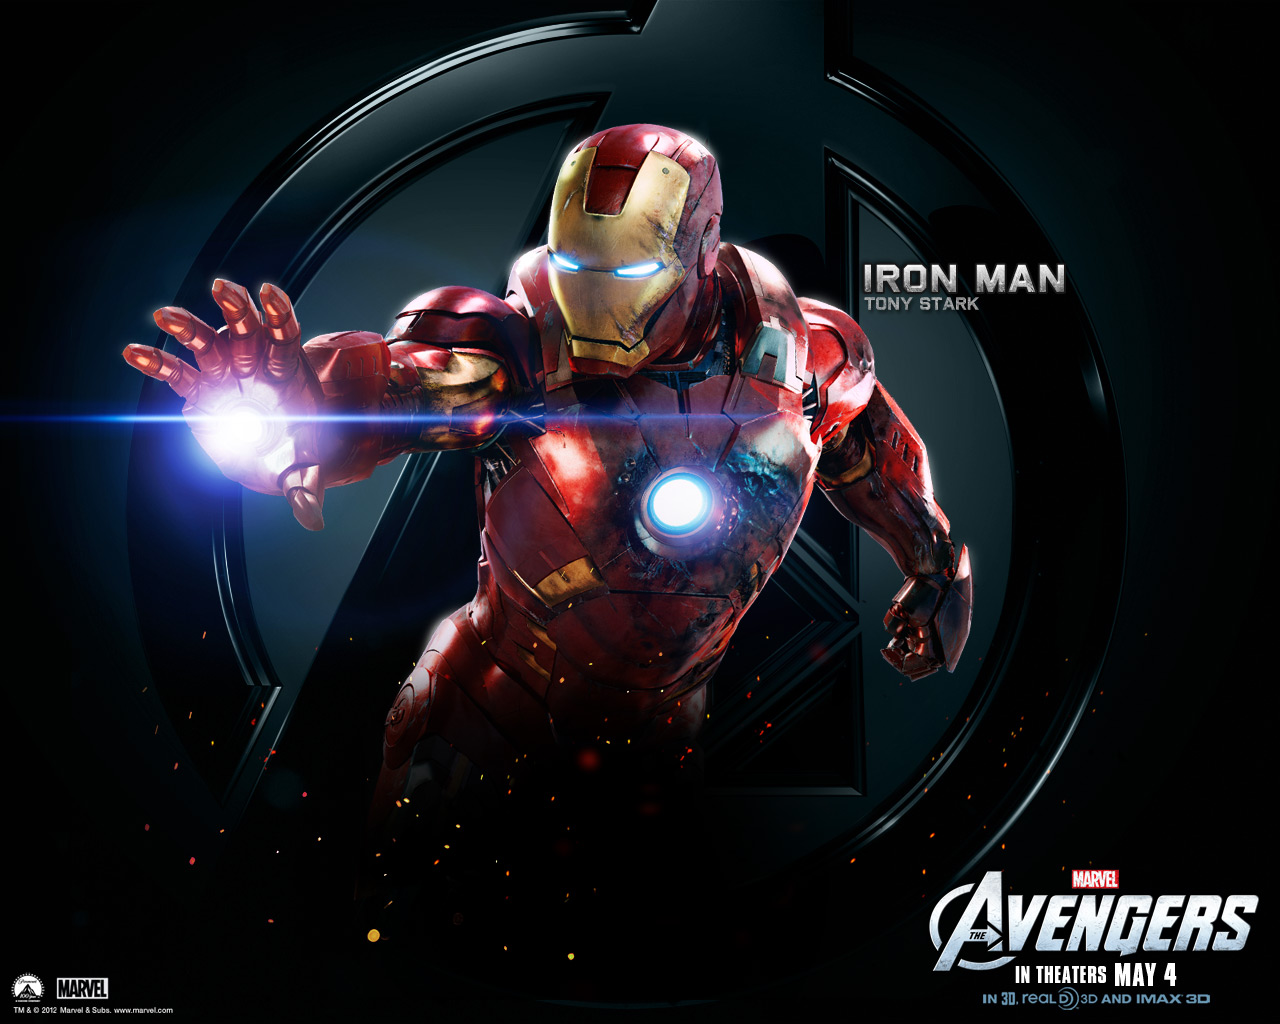 The Avengers Images Iron Man HD Wallpaper And Background Photos